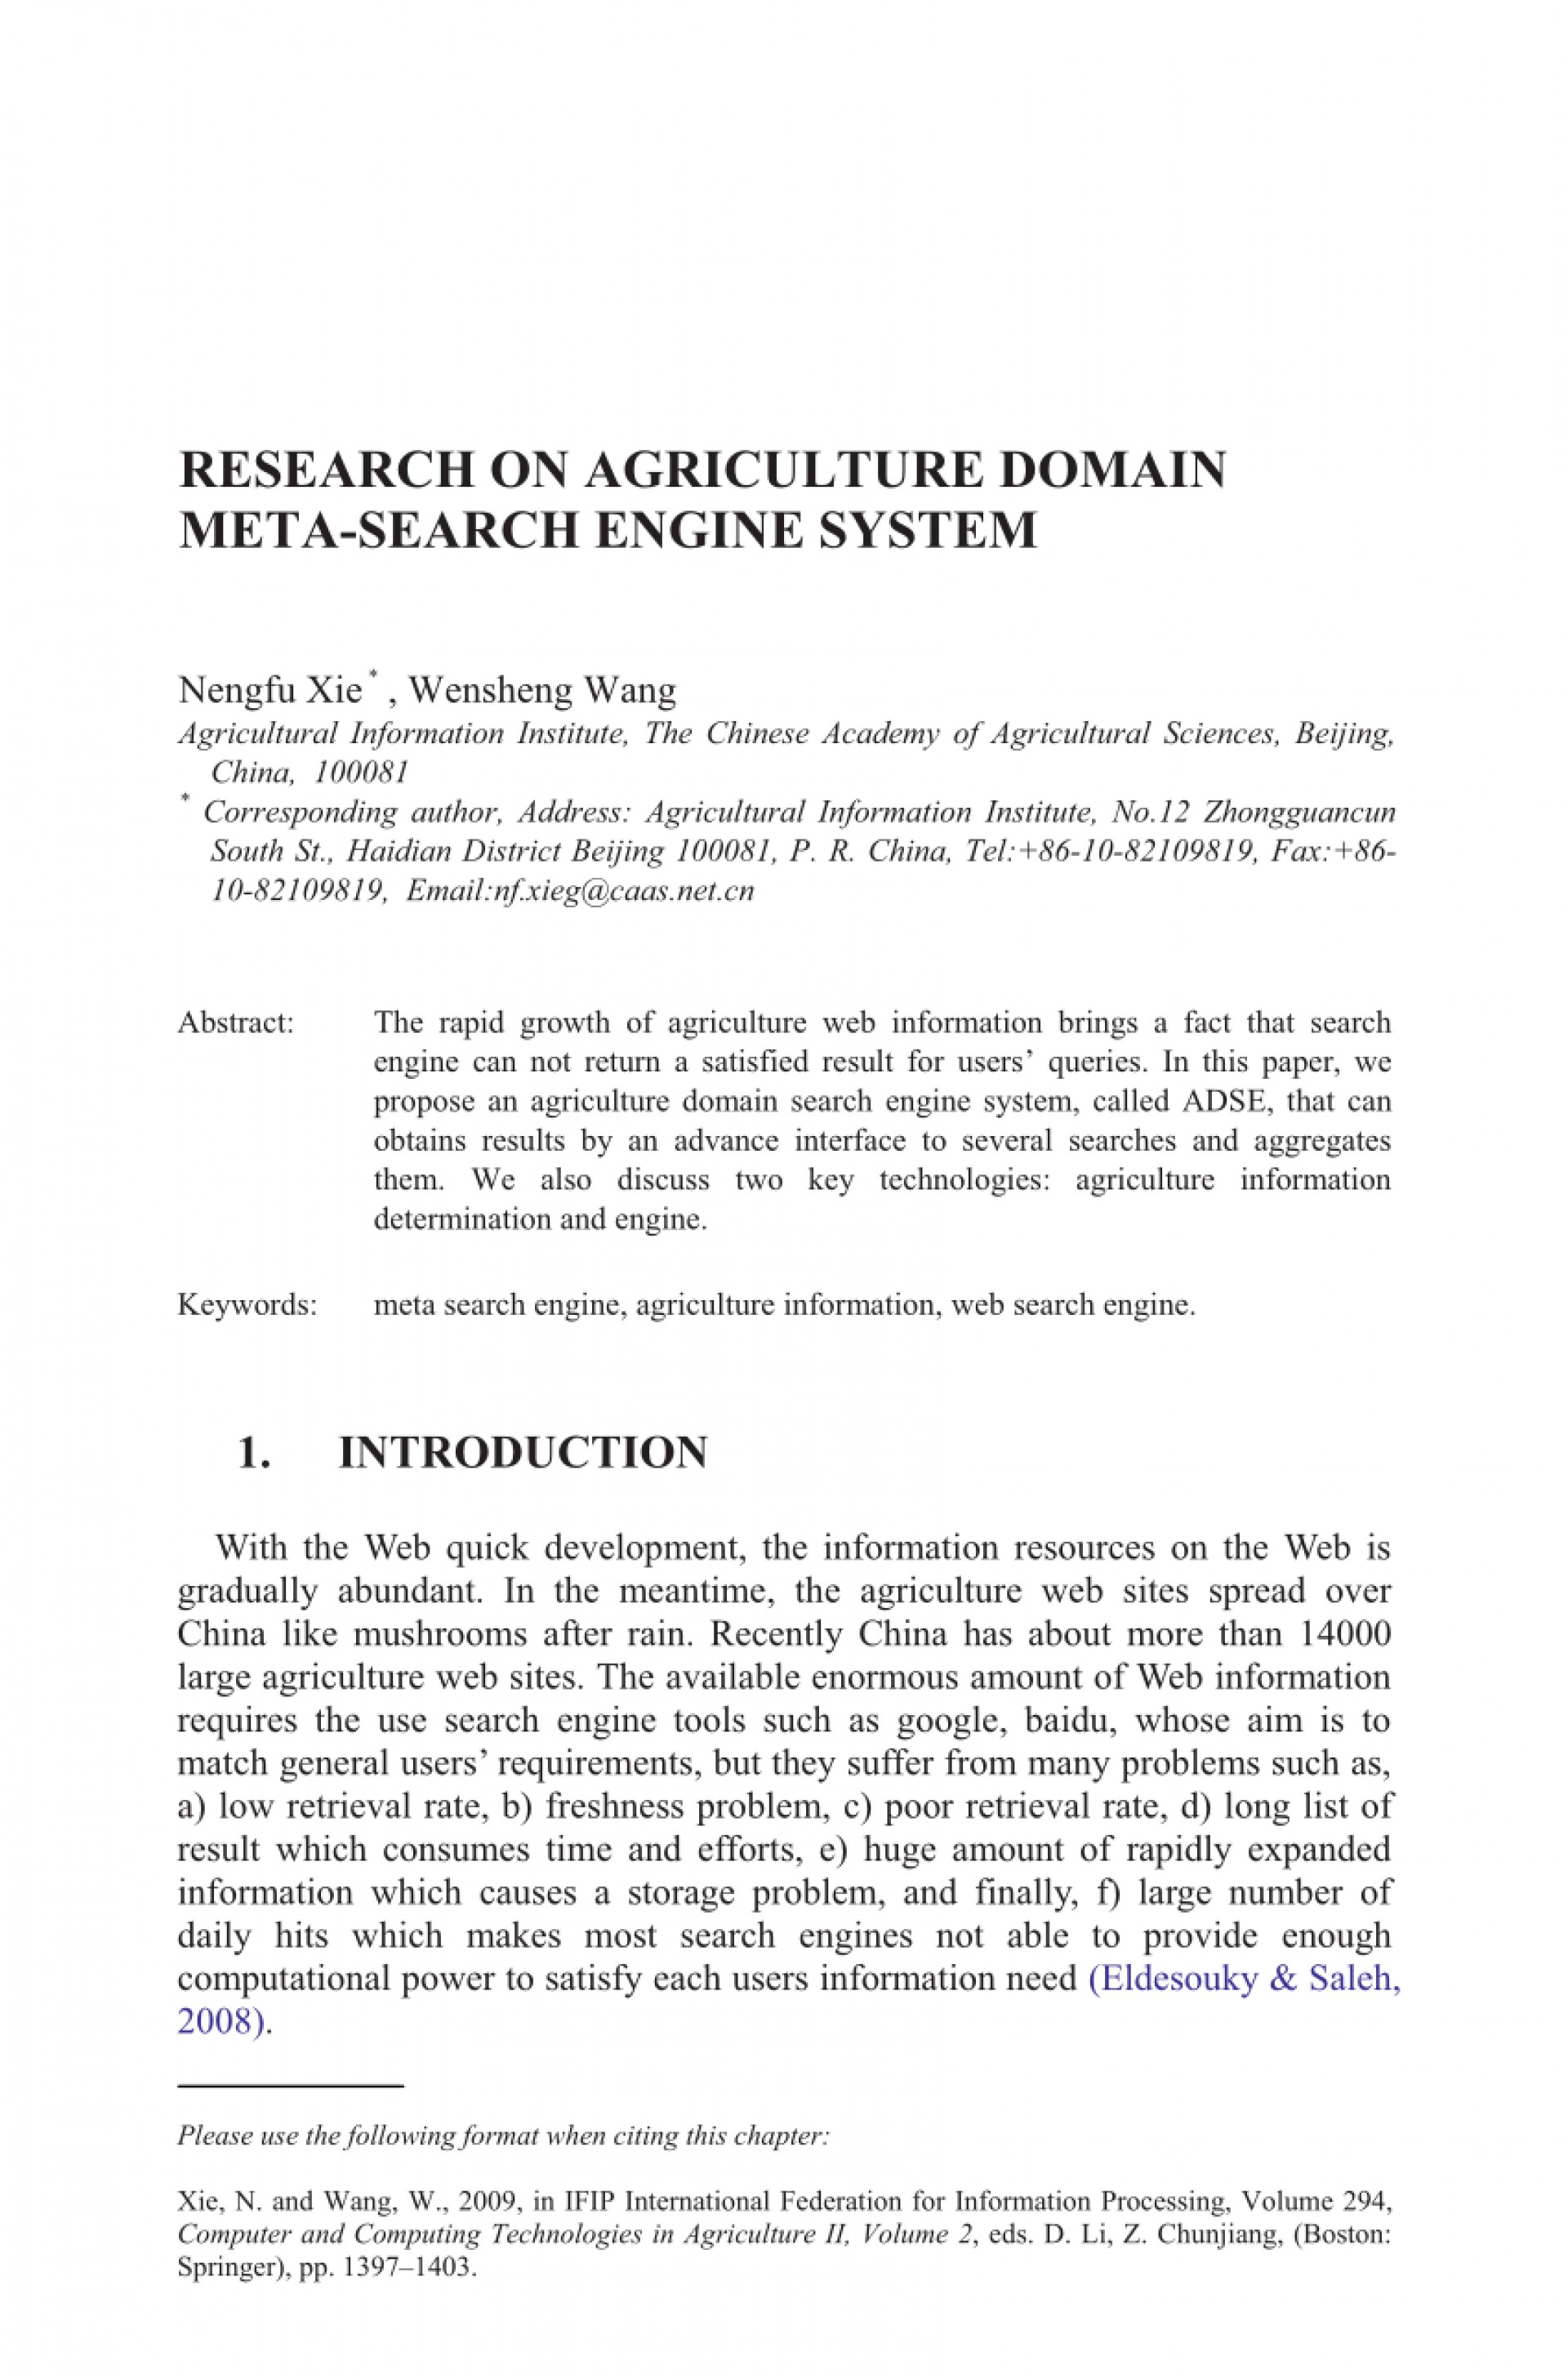 001 Meta Search Engine Research Paper Formidable 1920